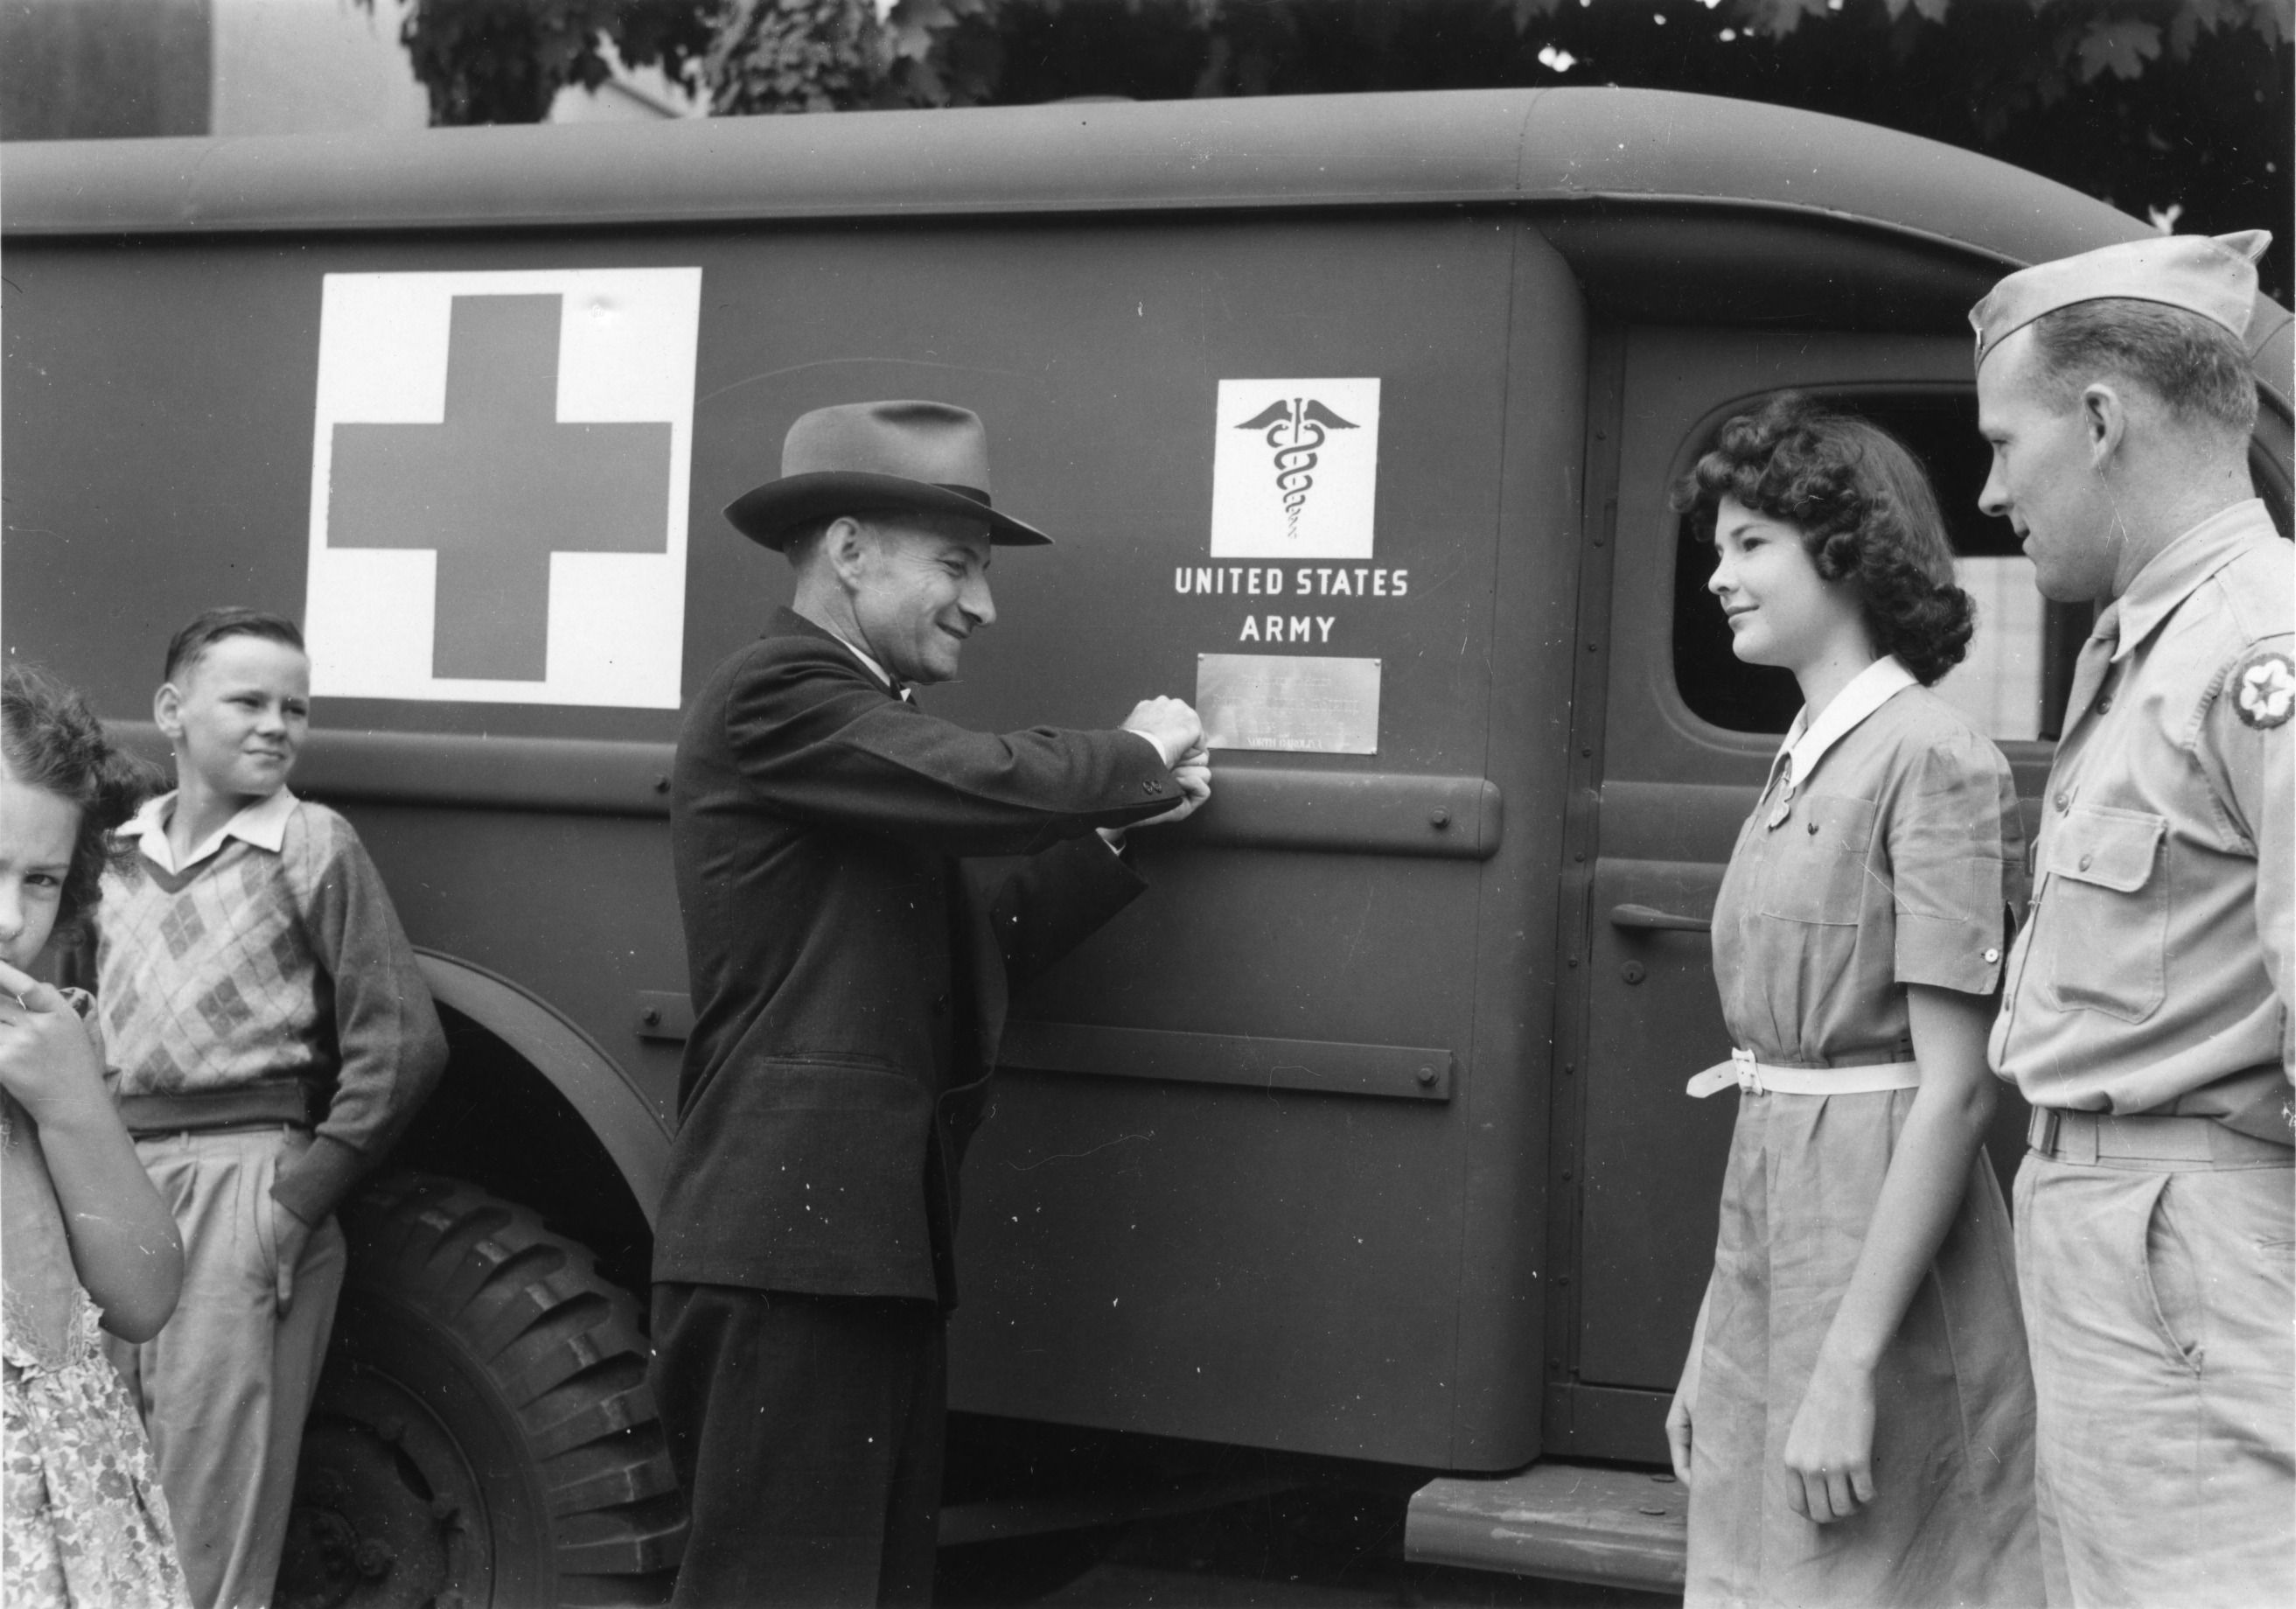 L. R. Harrill revealing the plaque placed on an ambulance donated to the United States Army Medical Department in honor of former 4-H club members now serving in the armed forces